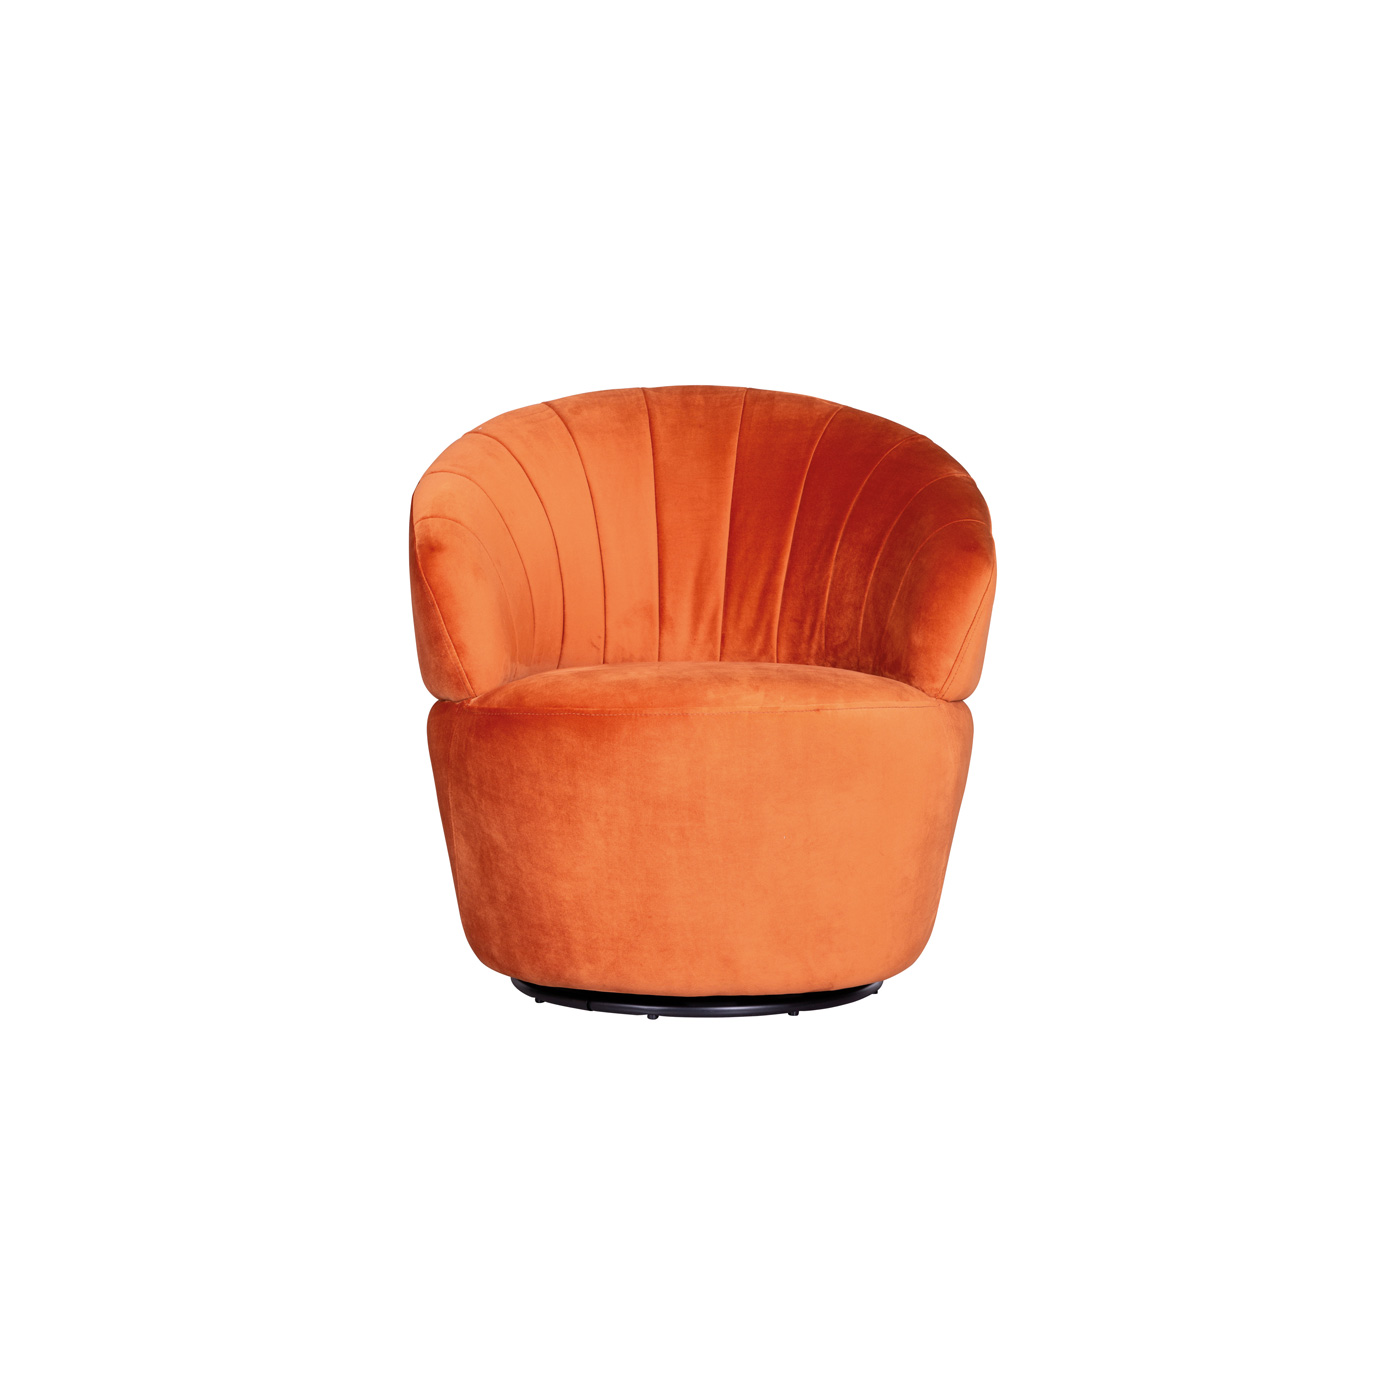 Addison-Swivel-Chair-Terracotta-Front-View (1)